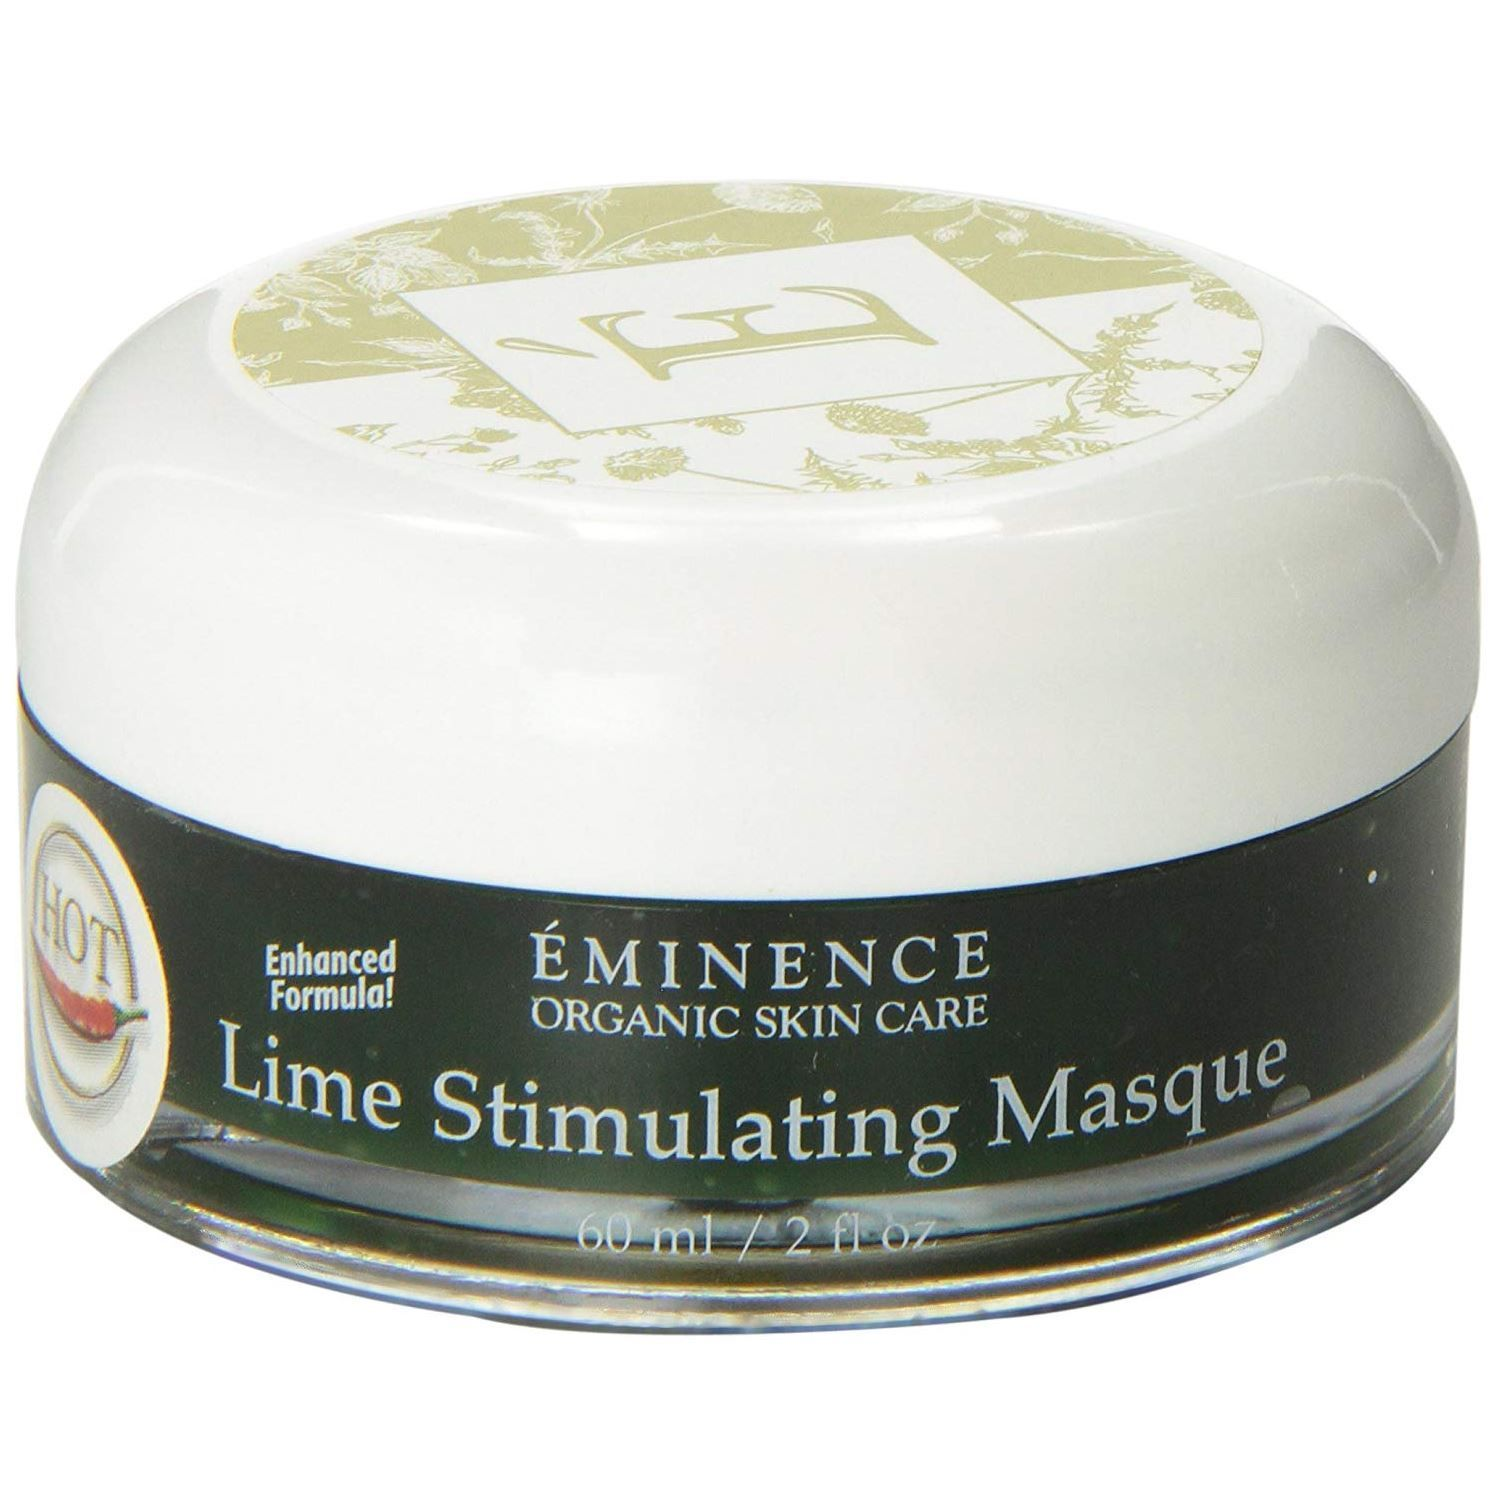 Lime Stimulating Mask